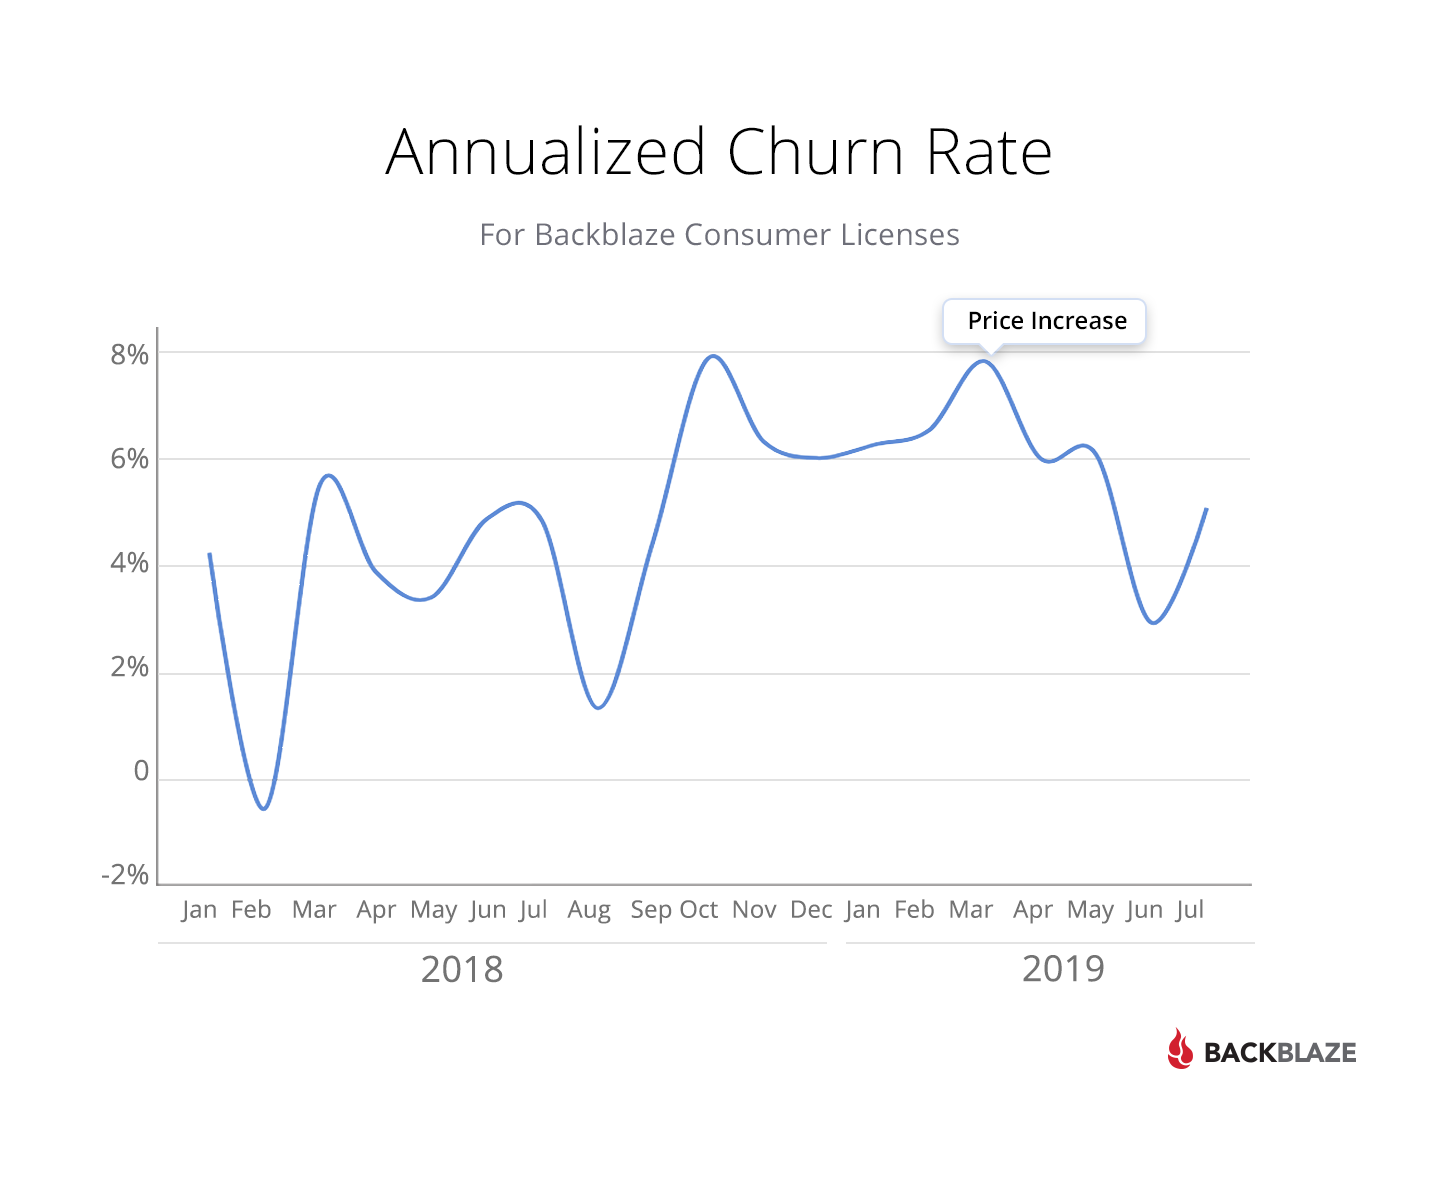 Annualized churn rate